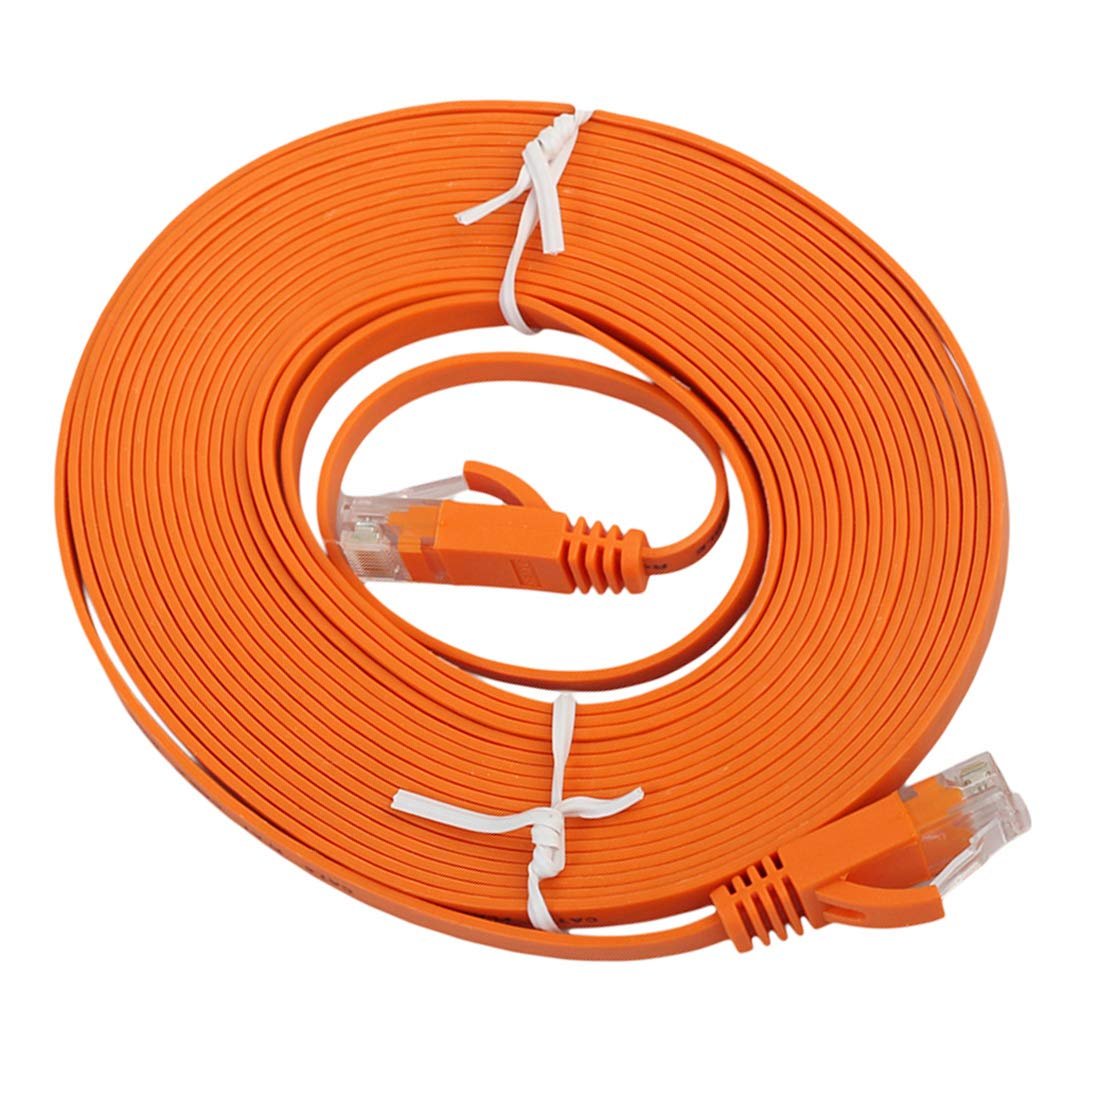 Color : Orange Patch Lead RJ45 Black Networking Accessories 5m CAT6 Ultra-Thin Flat Ethernet Network LAN Cable